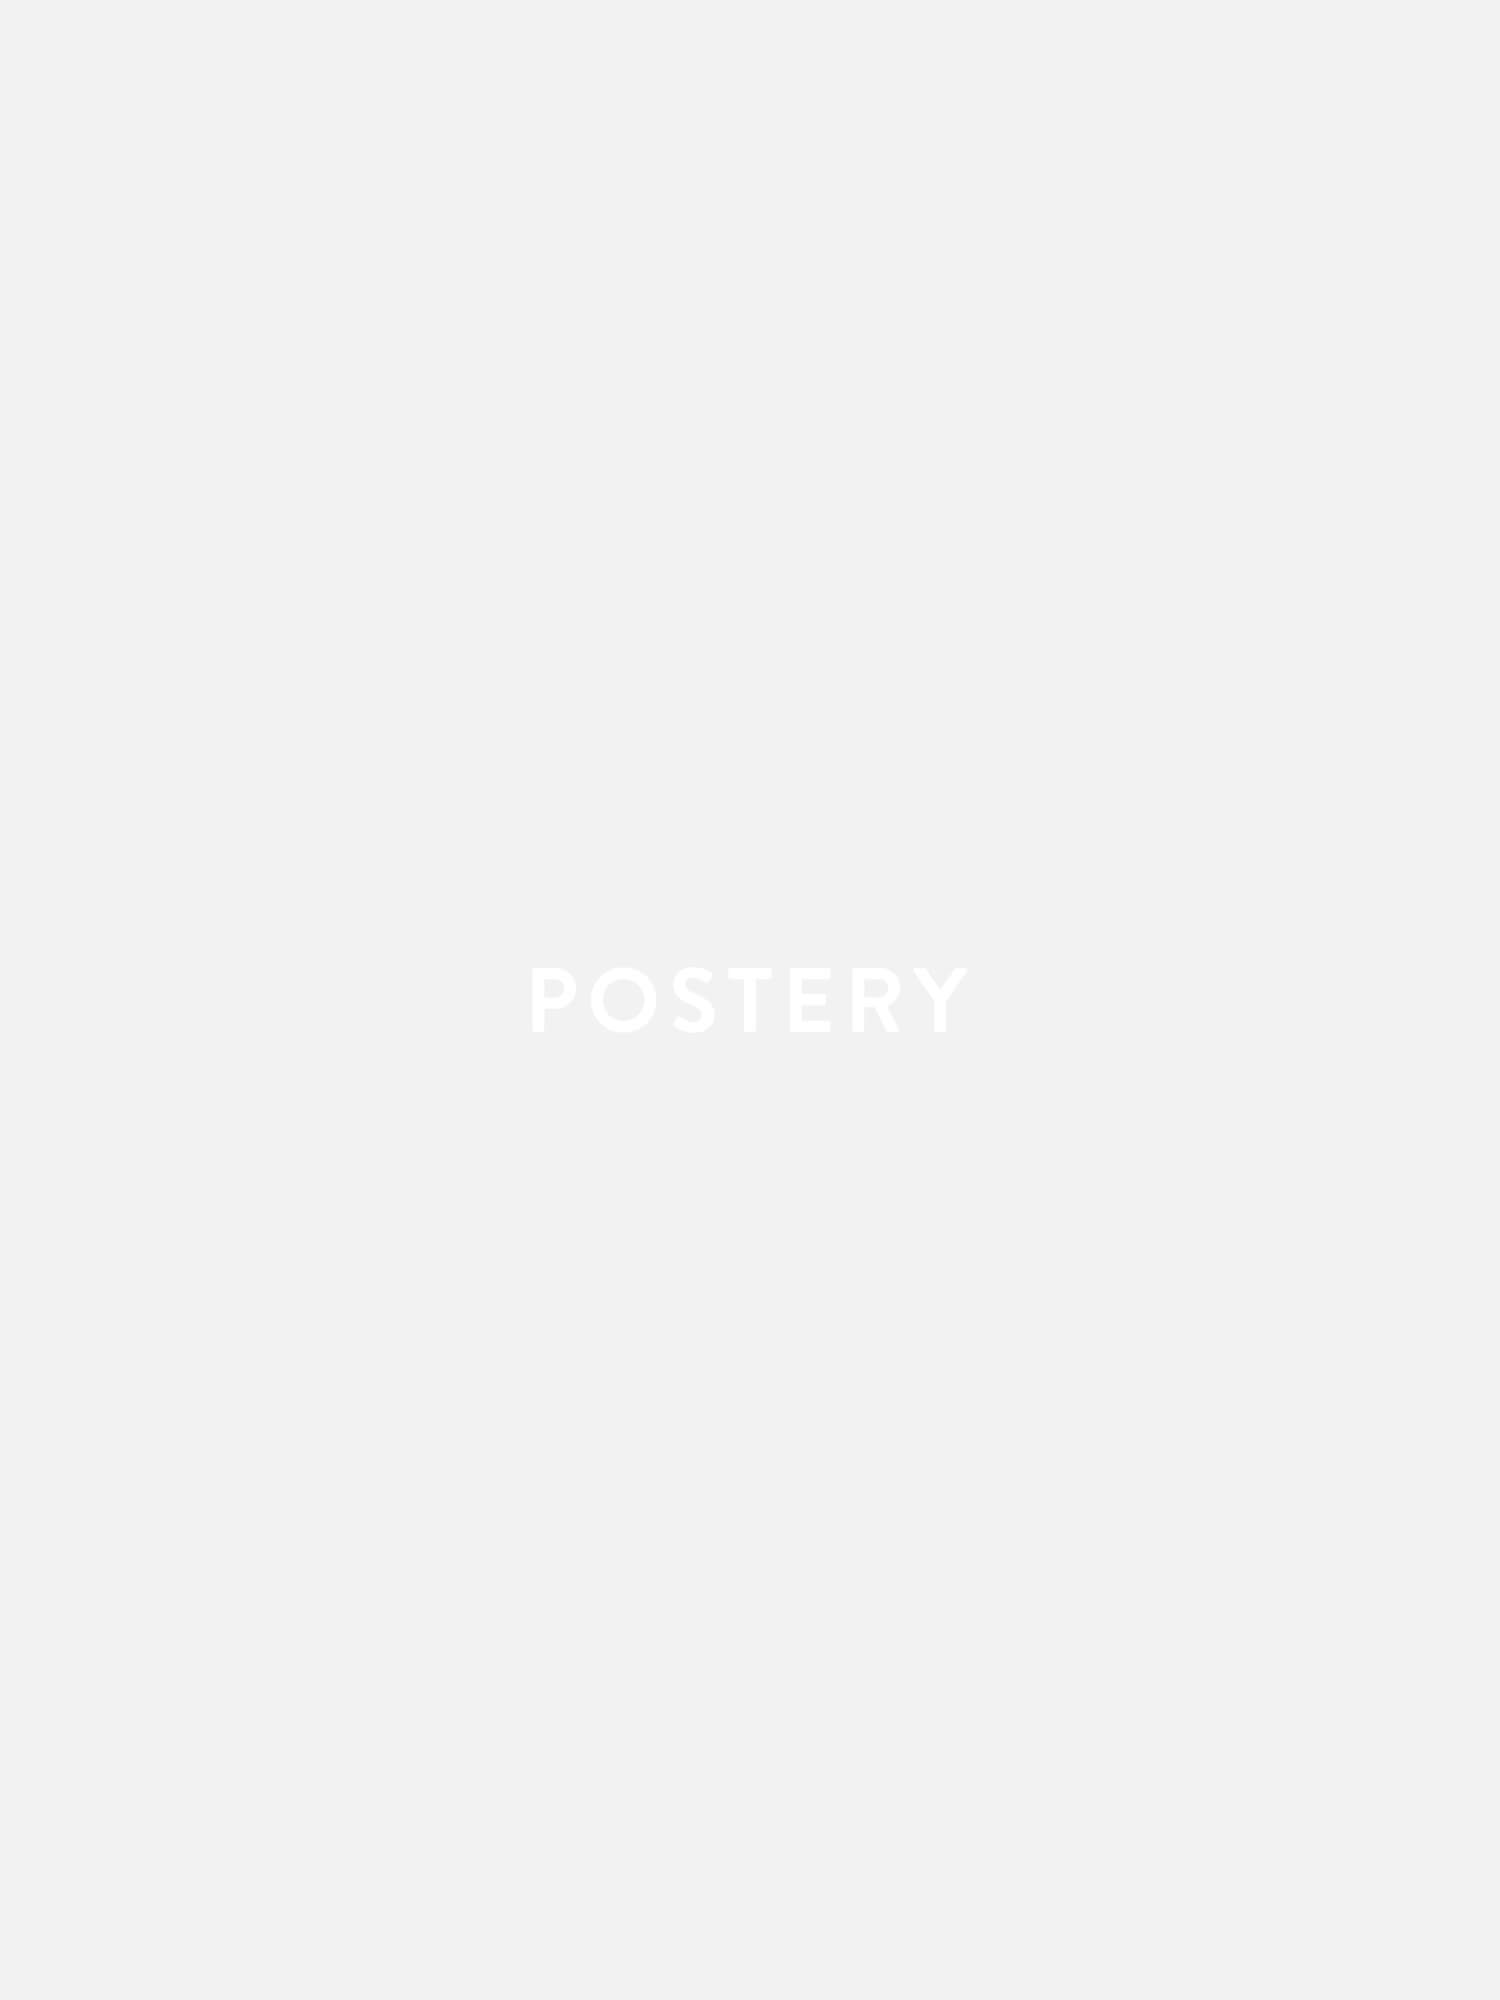 Serious Leopard Poster